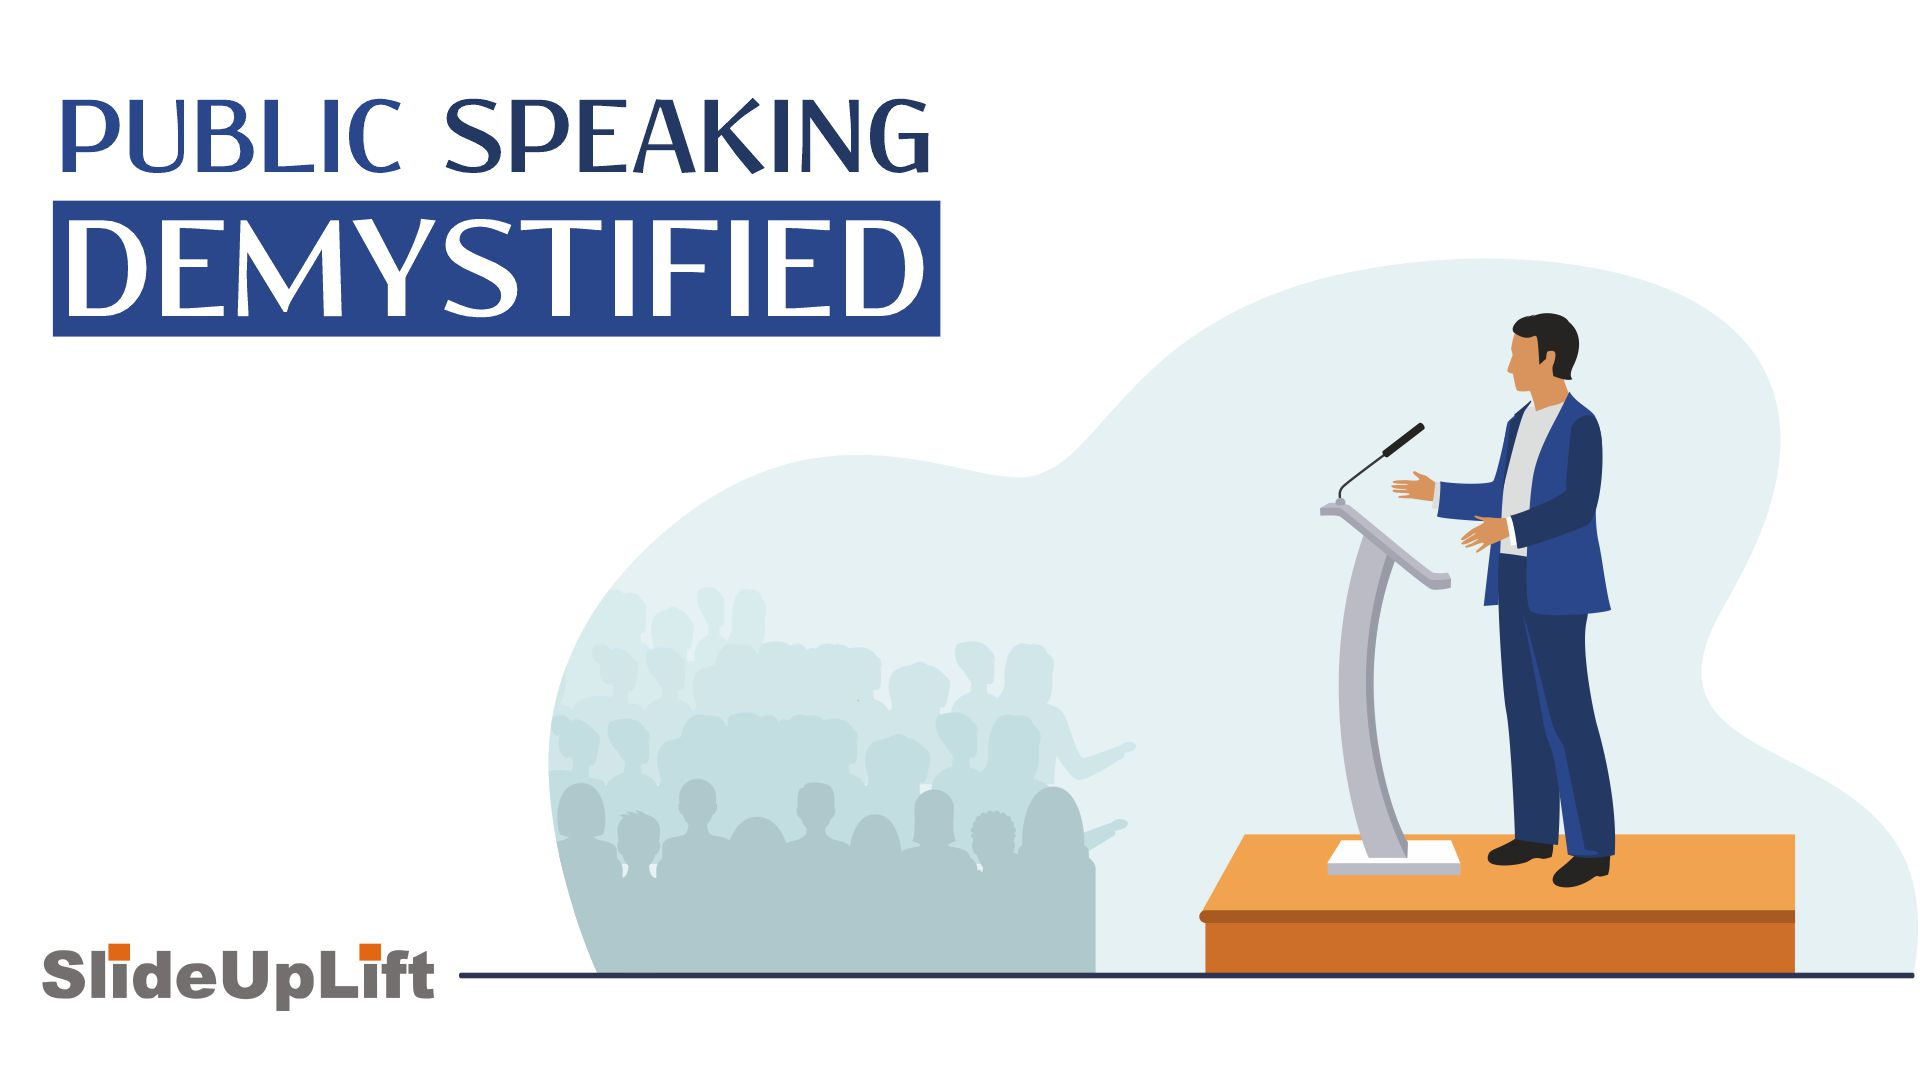 Public Speaking Demystified: Tips To Successful Workplace Communication